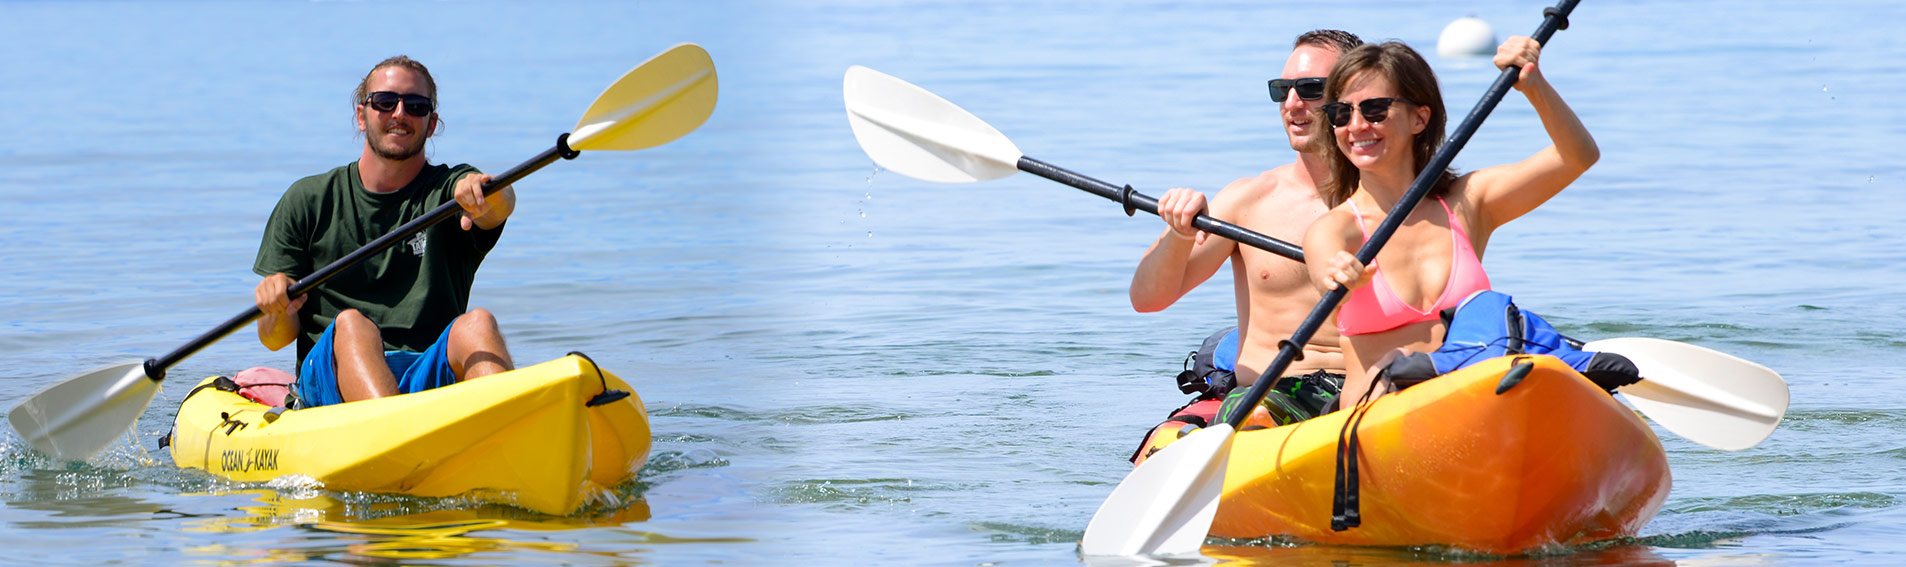 Kayak Rentals & Tours